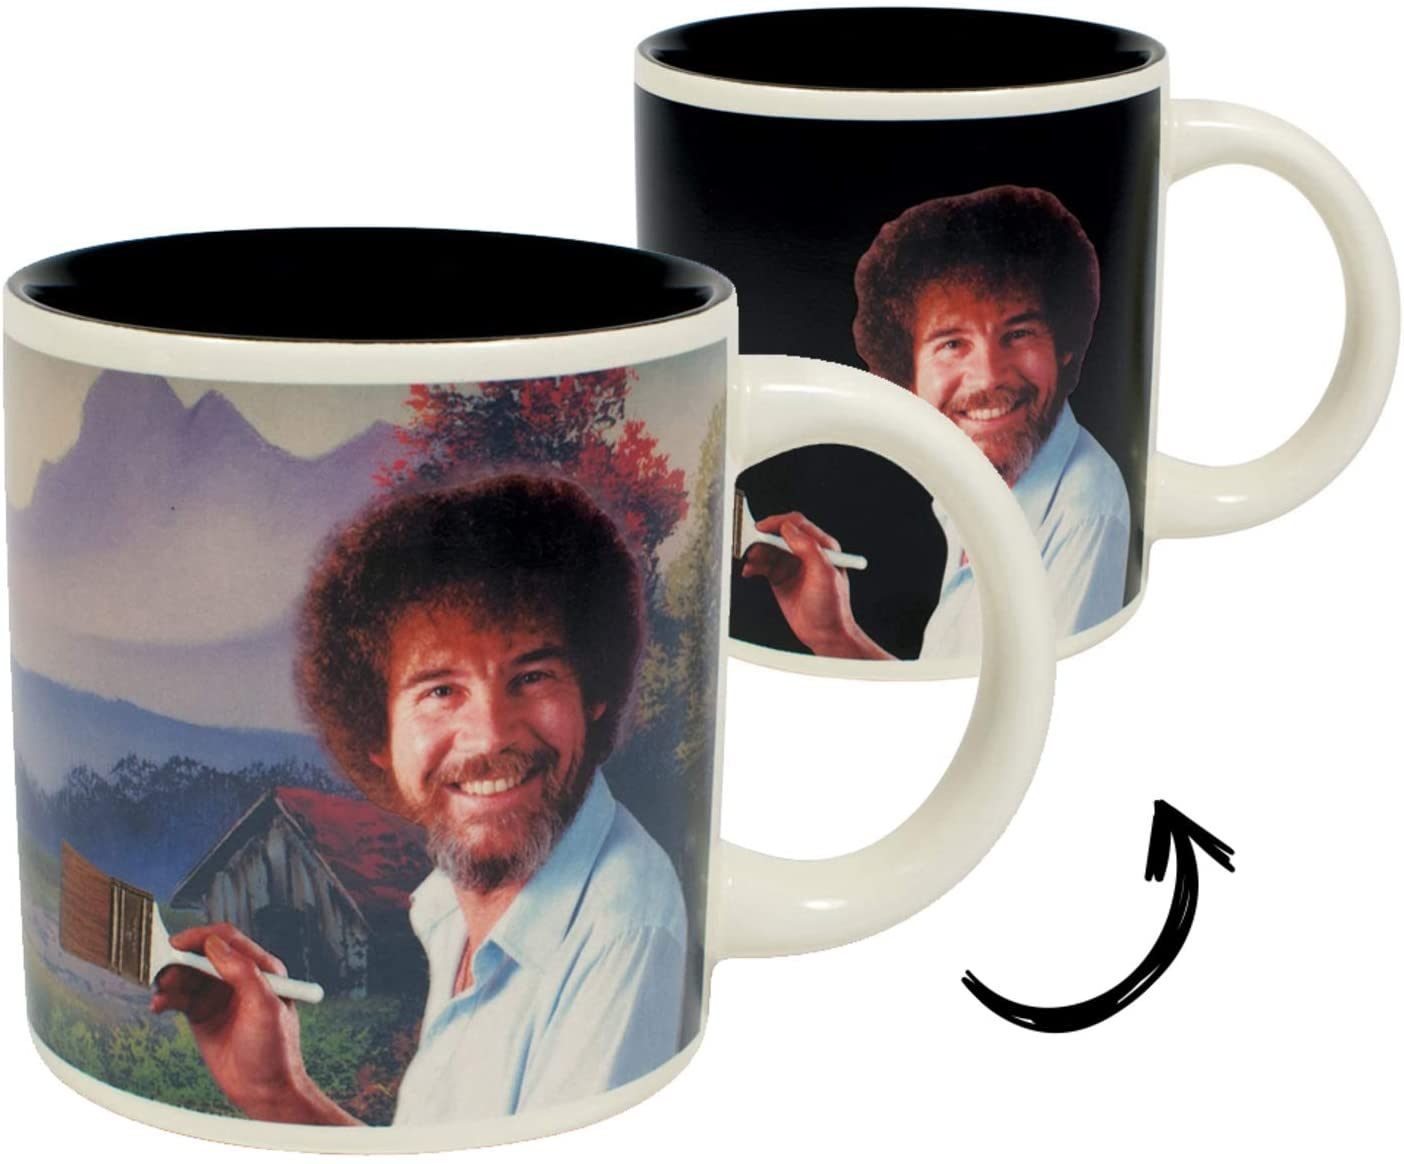 Image for Bob Ross Heat Changing Mug - Add Coffee or Tea and a Happy Little Scene Appears - Comes in a Fun Gift Box